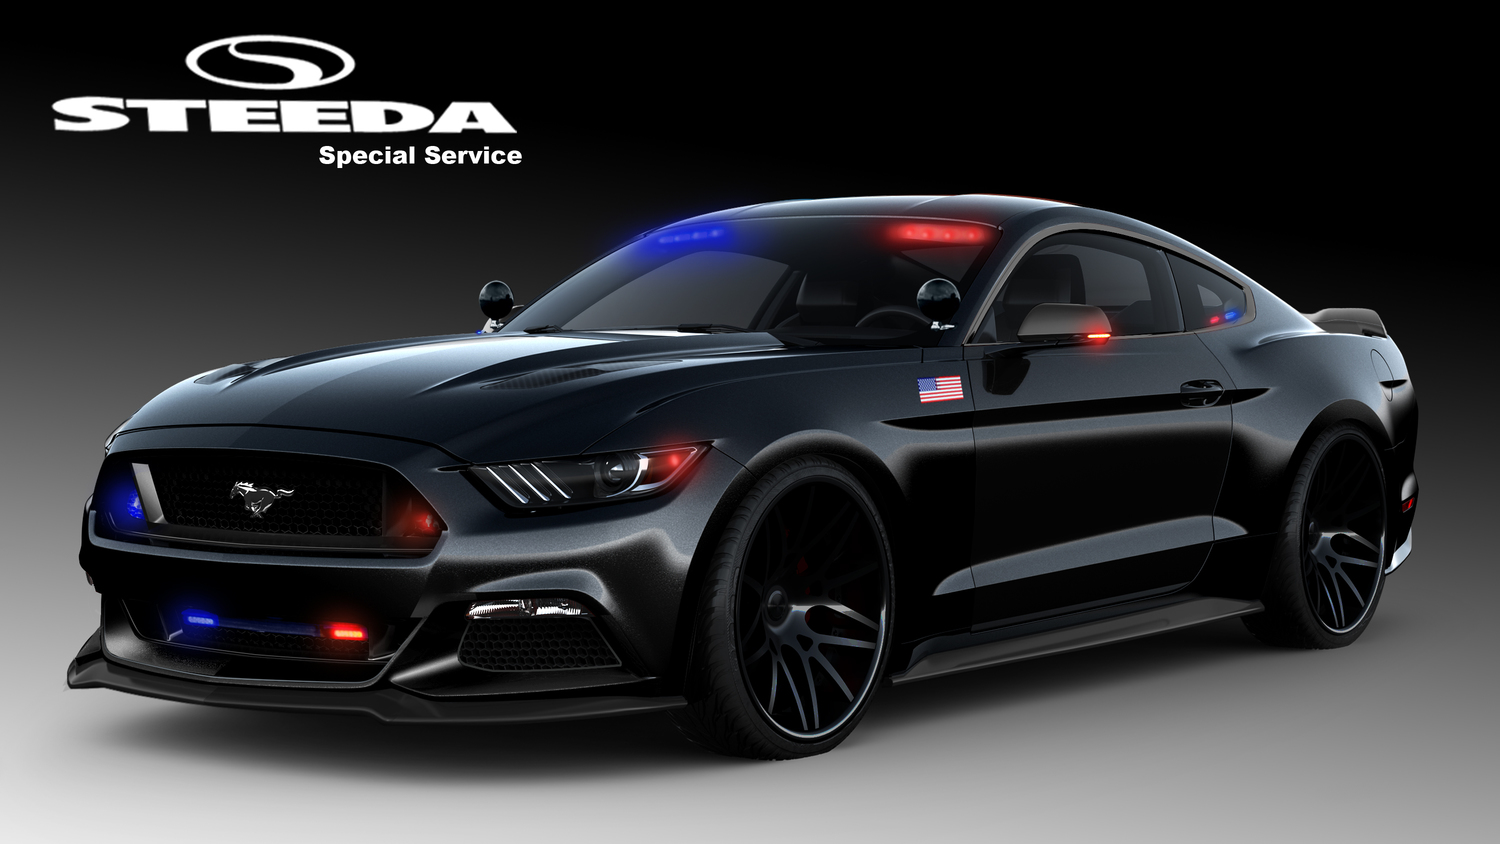 s550 mustang police car from steeda is ready to protect and serve